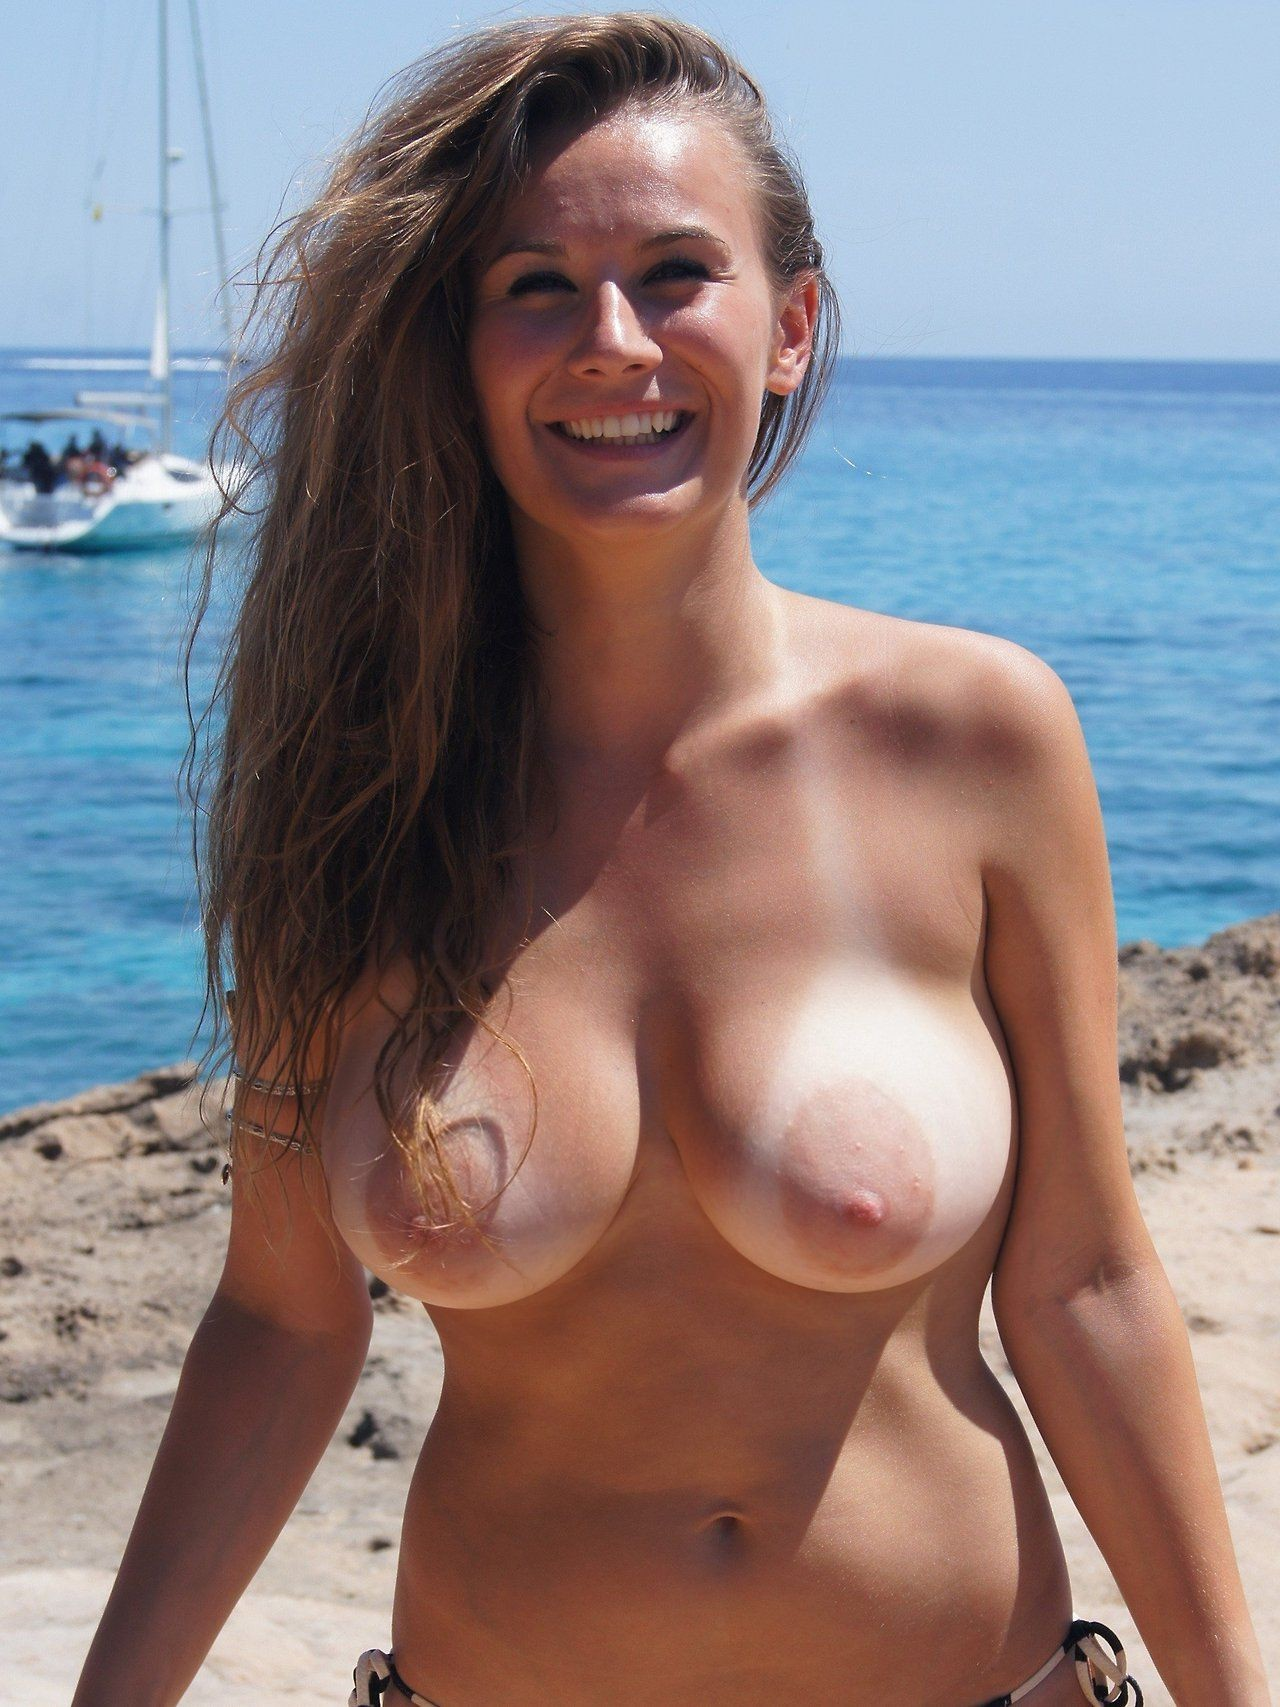 Girls with tan lines porn